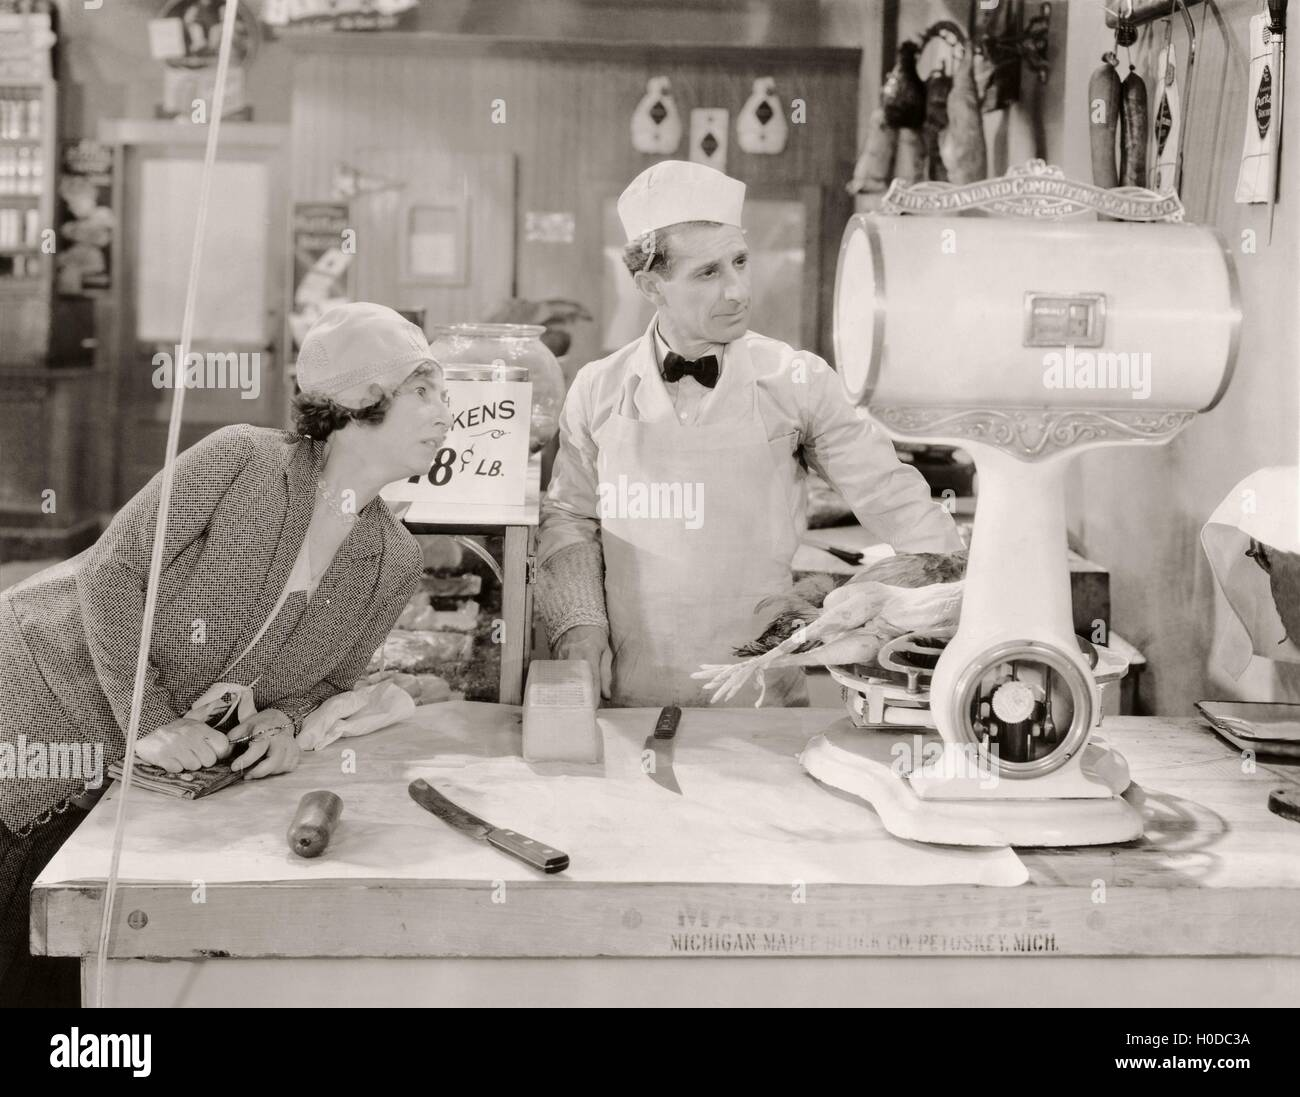 Butcher and customer looking at weight of chicken on scale - Stock Image